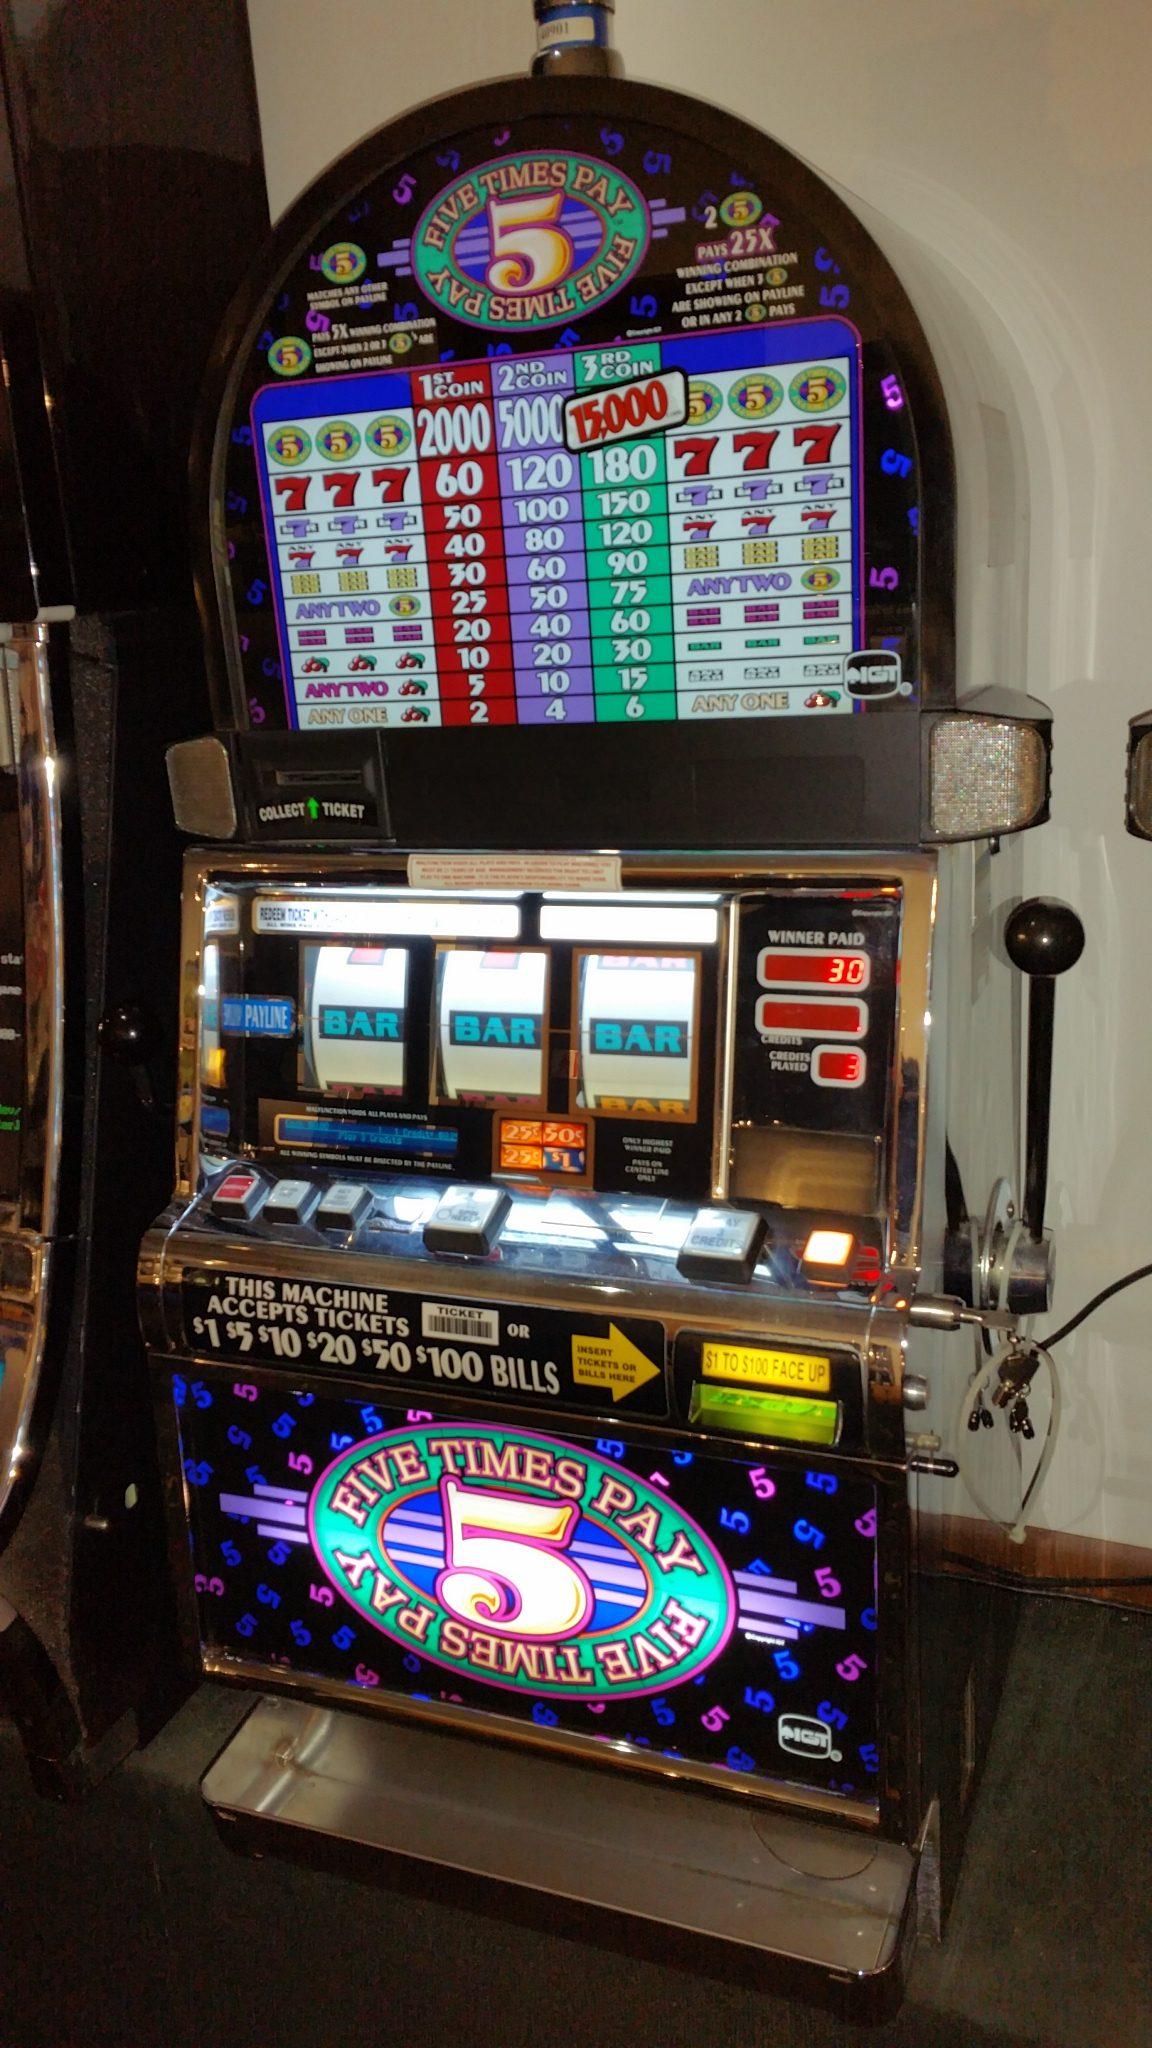 IGT S2000 Five Times Pay Multi-denominational Slot Machine